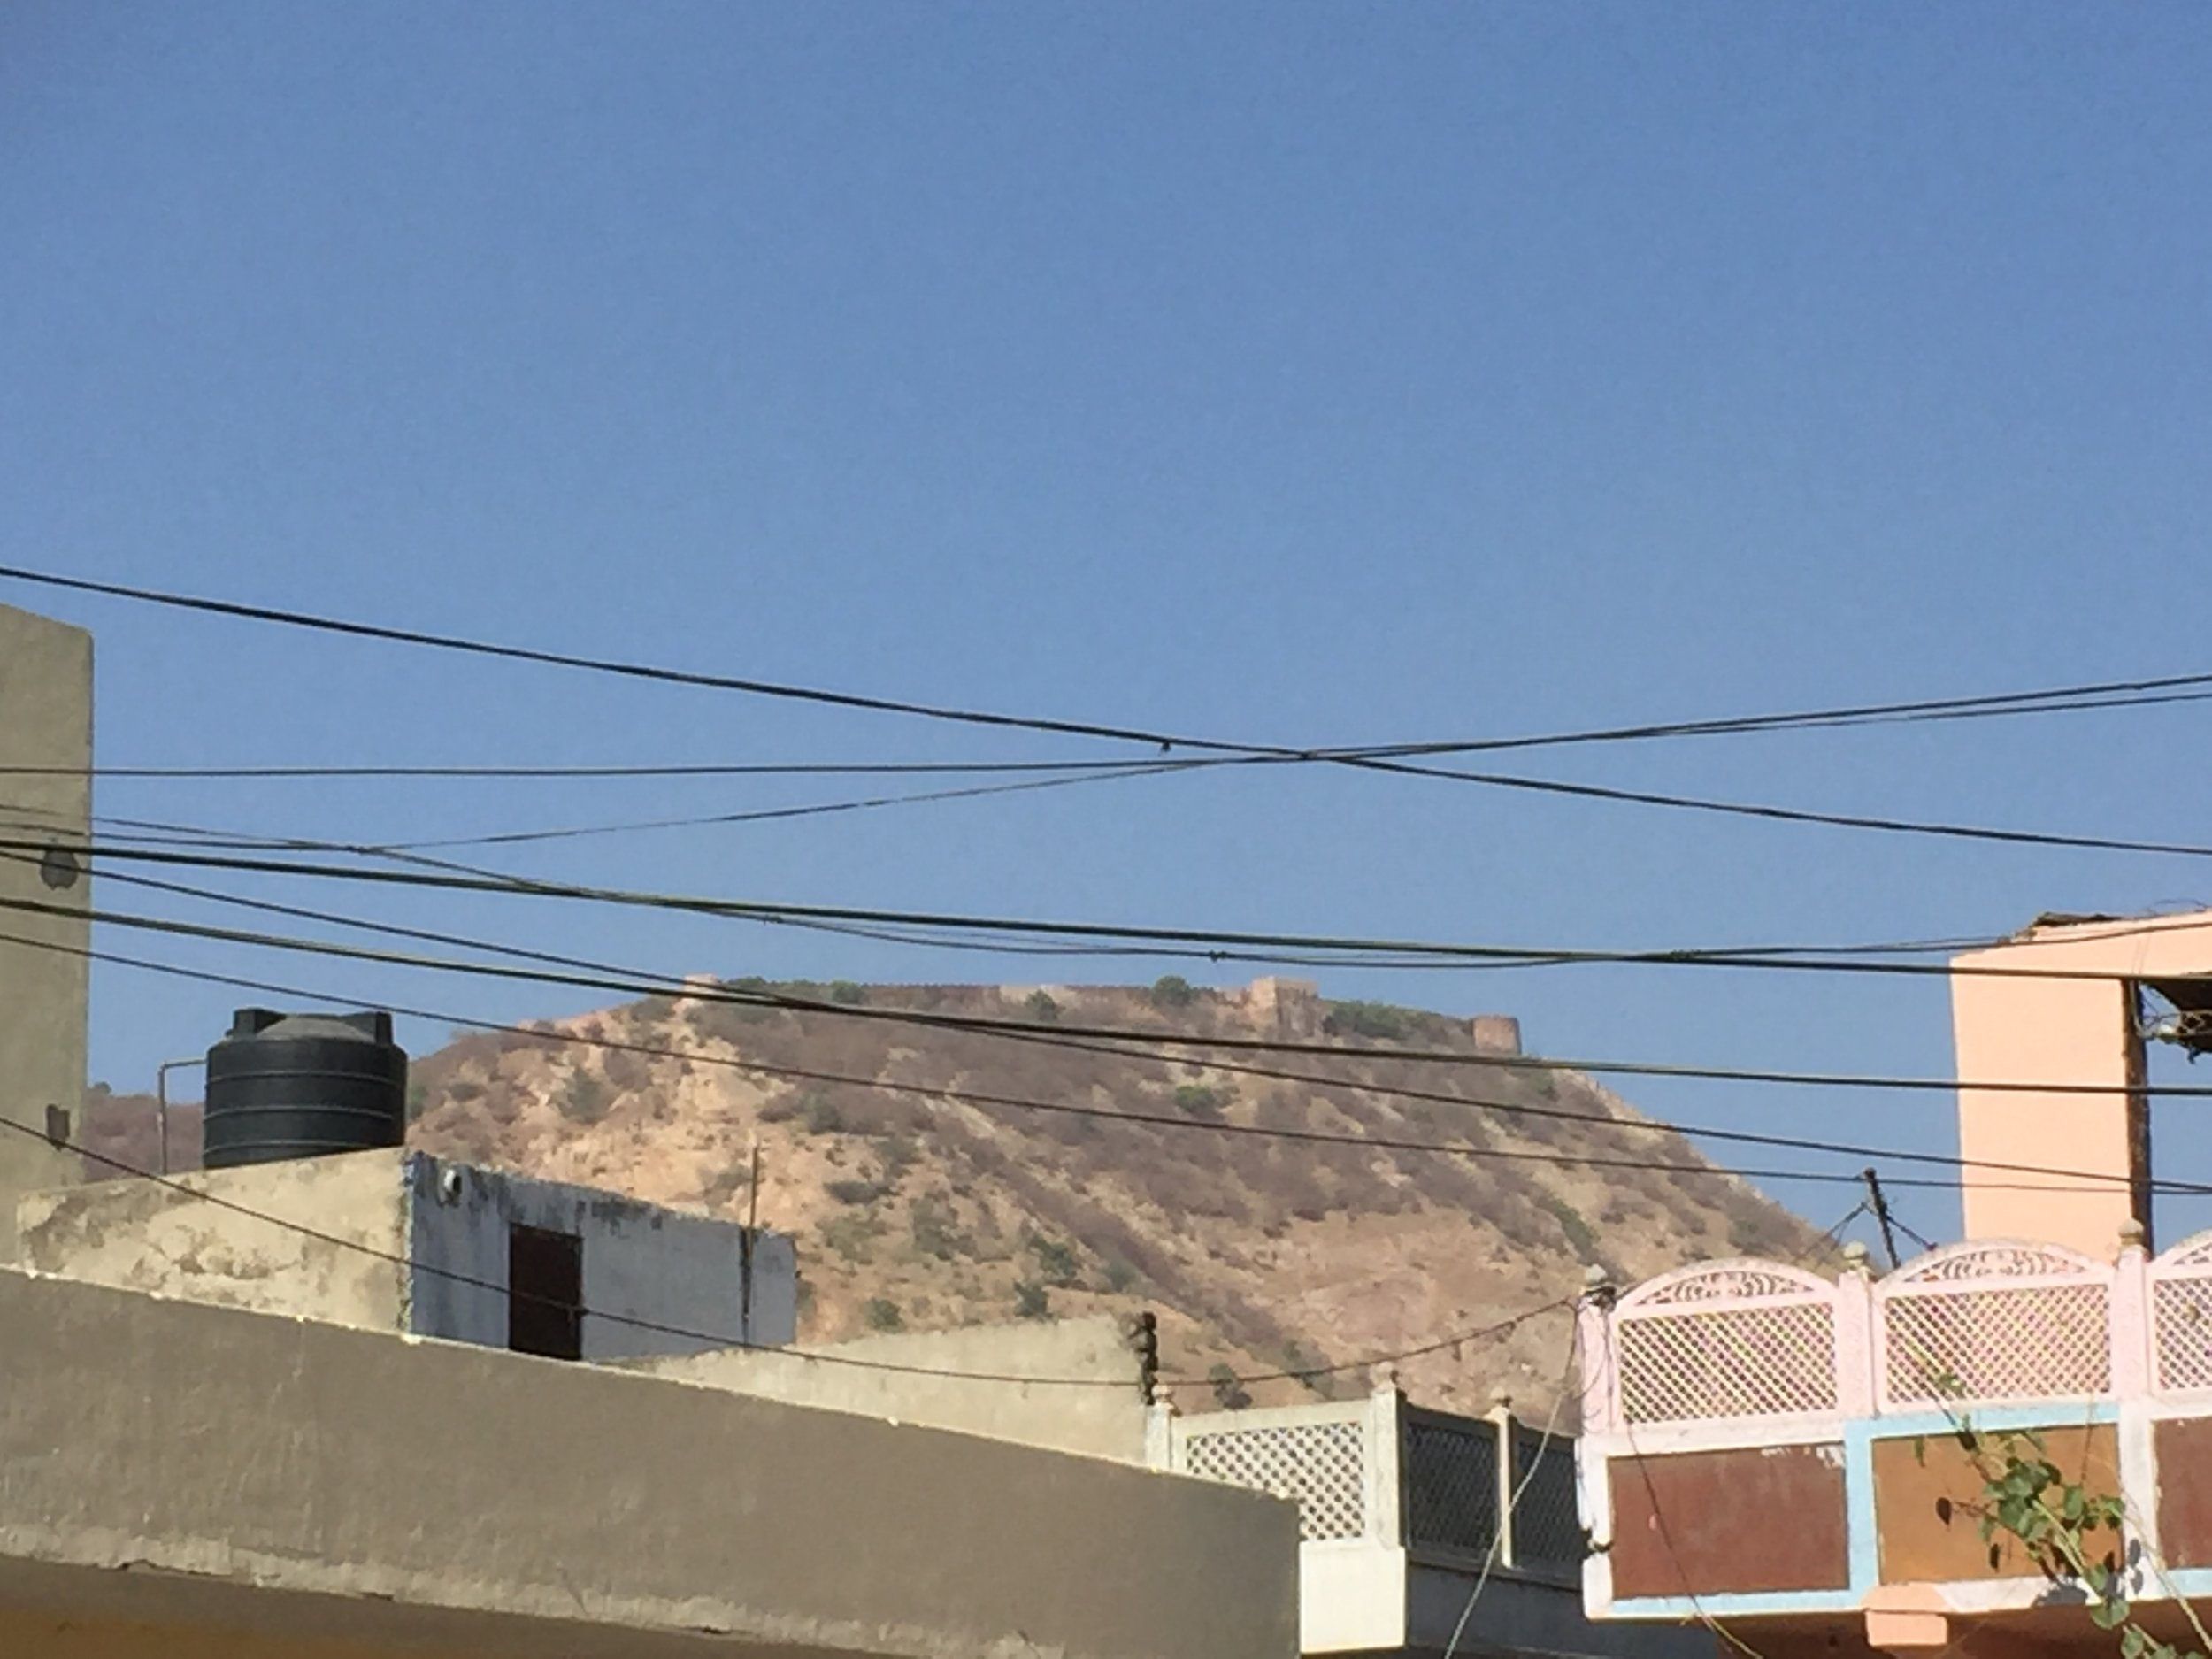 Nahargarh Fort overlooking the town.